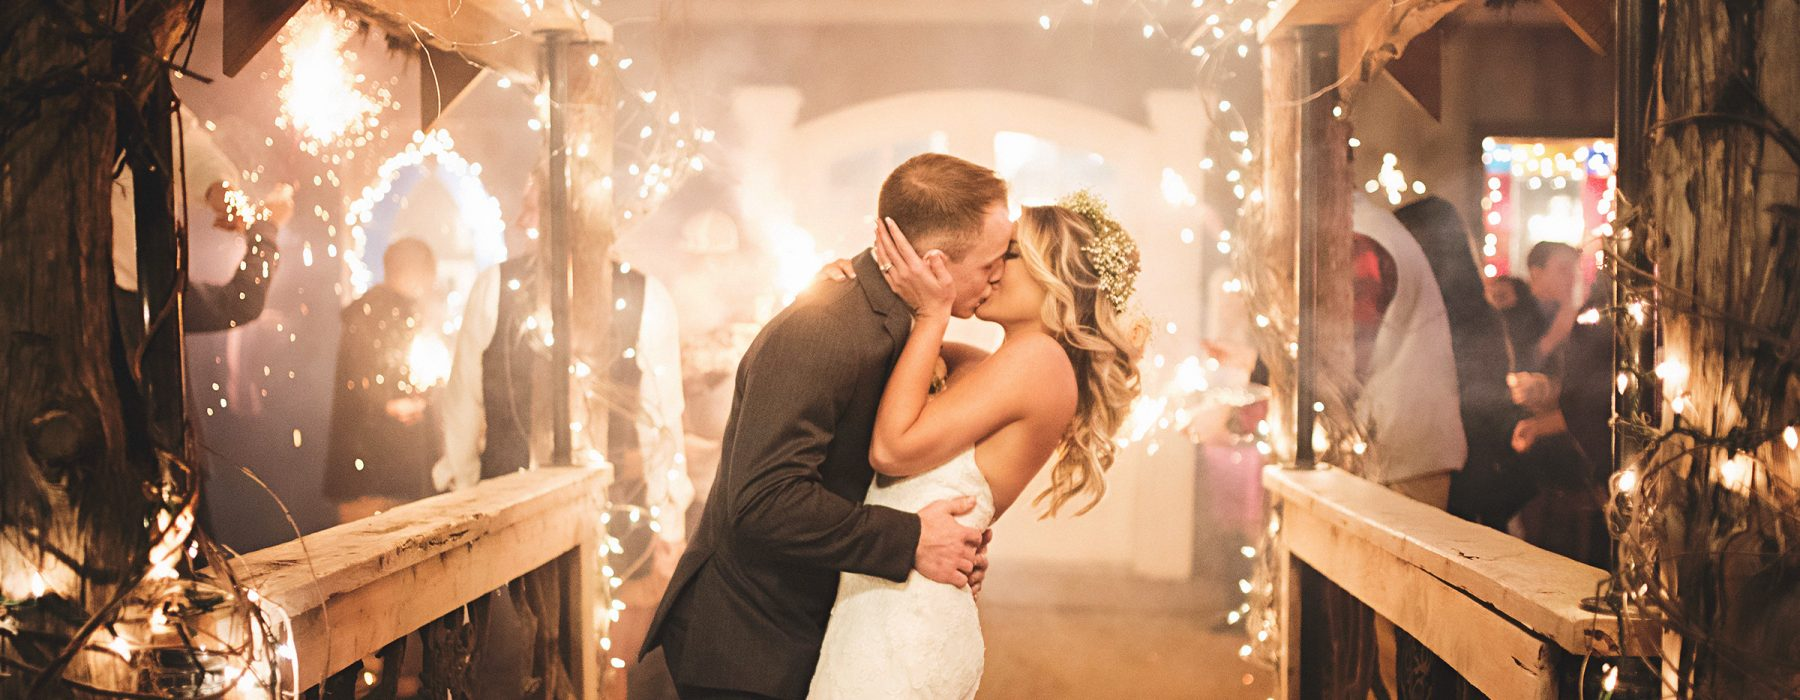 Bride and groom kiss under twinkle lights